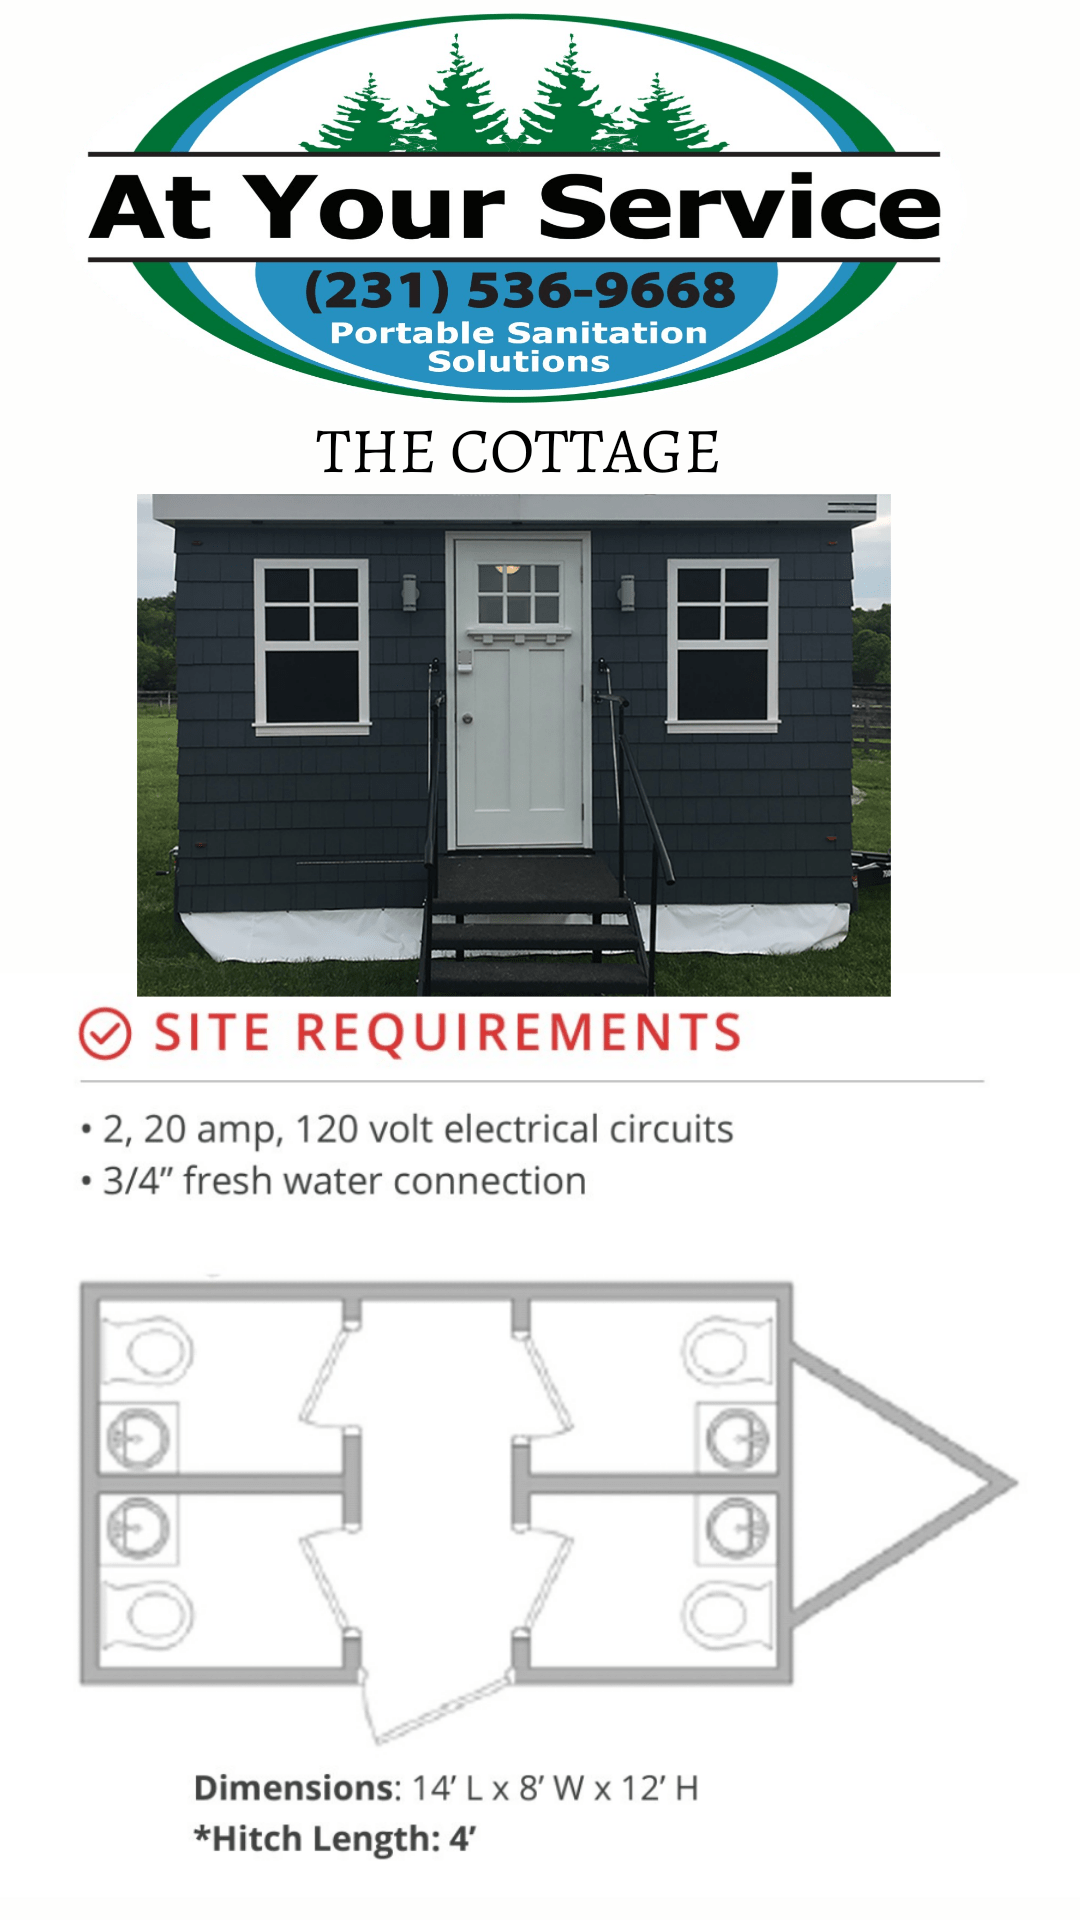 Product Specs Features At Your Service Plus How Many Circuits In A Bathroom We Offer You The Finest Mobile Sanitation Systems Our Cottage Brings Restroom Quality Design And Cleanliness Of Top Resorts